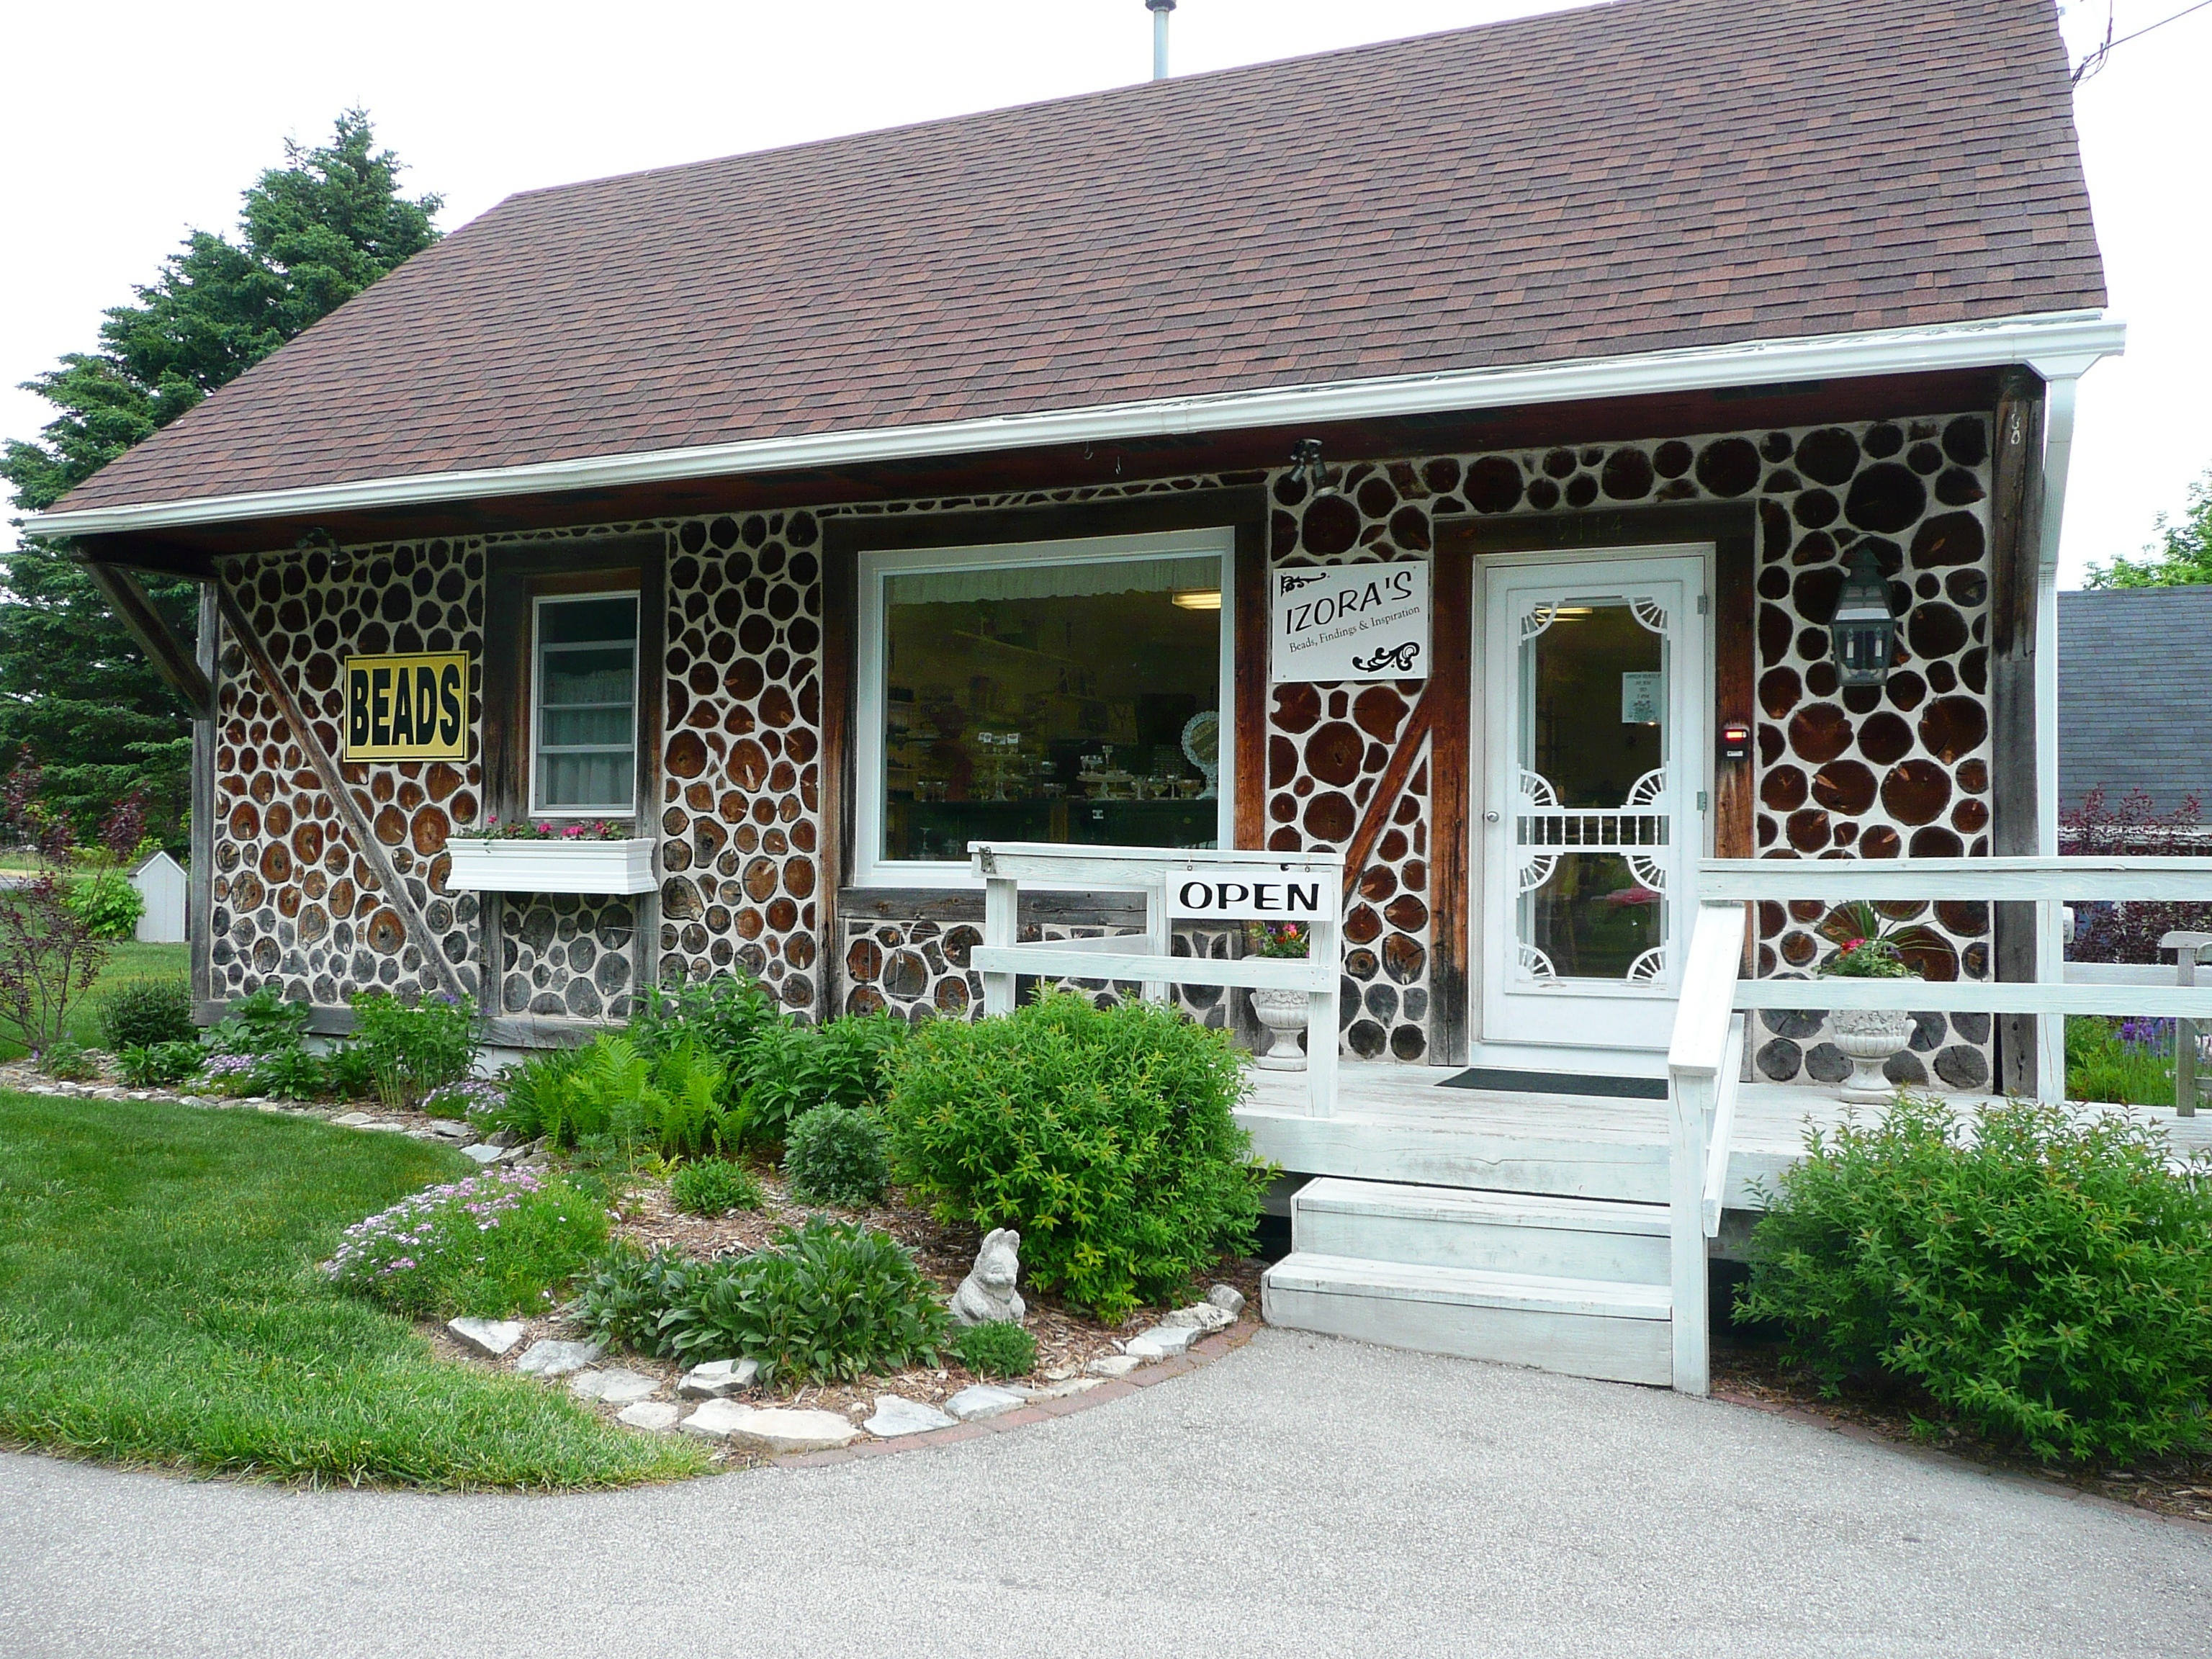 Settlement inn fish creek wi all the best fish in 2018 for Door county hotels fish creek